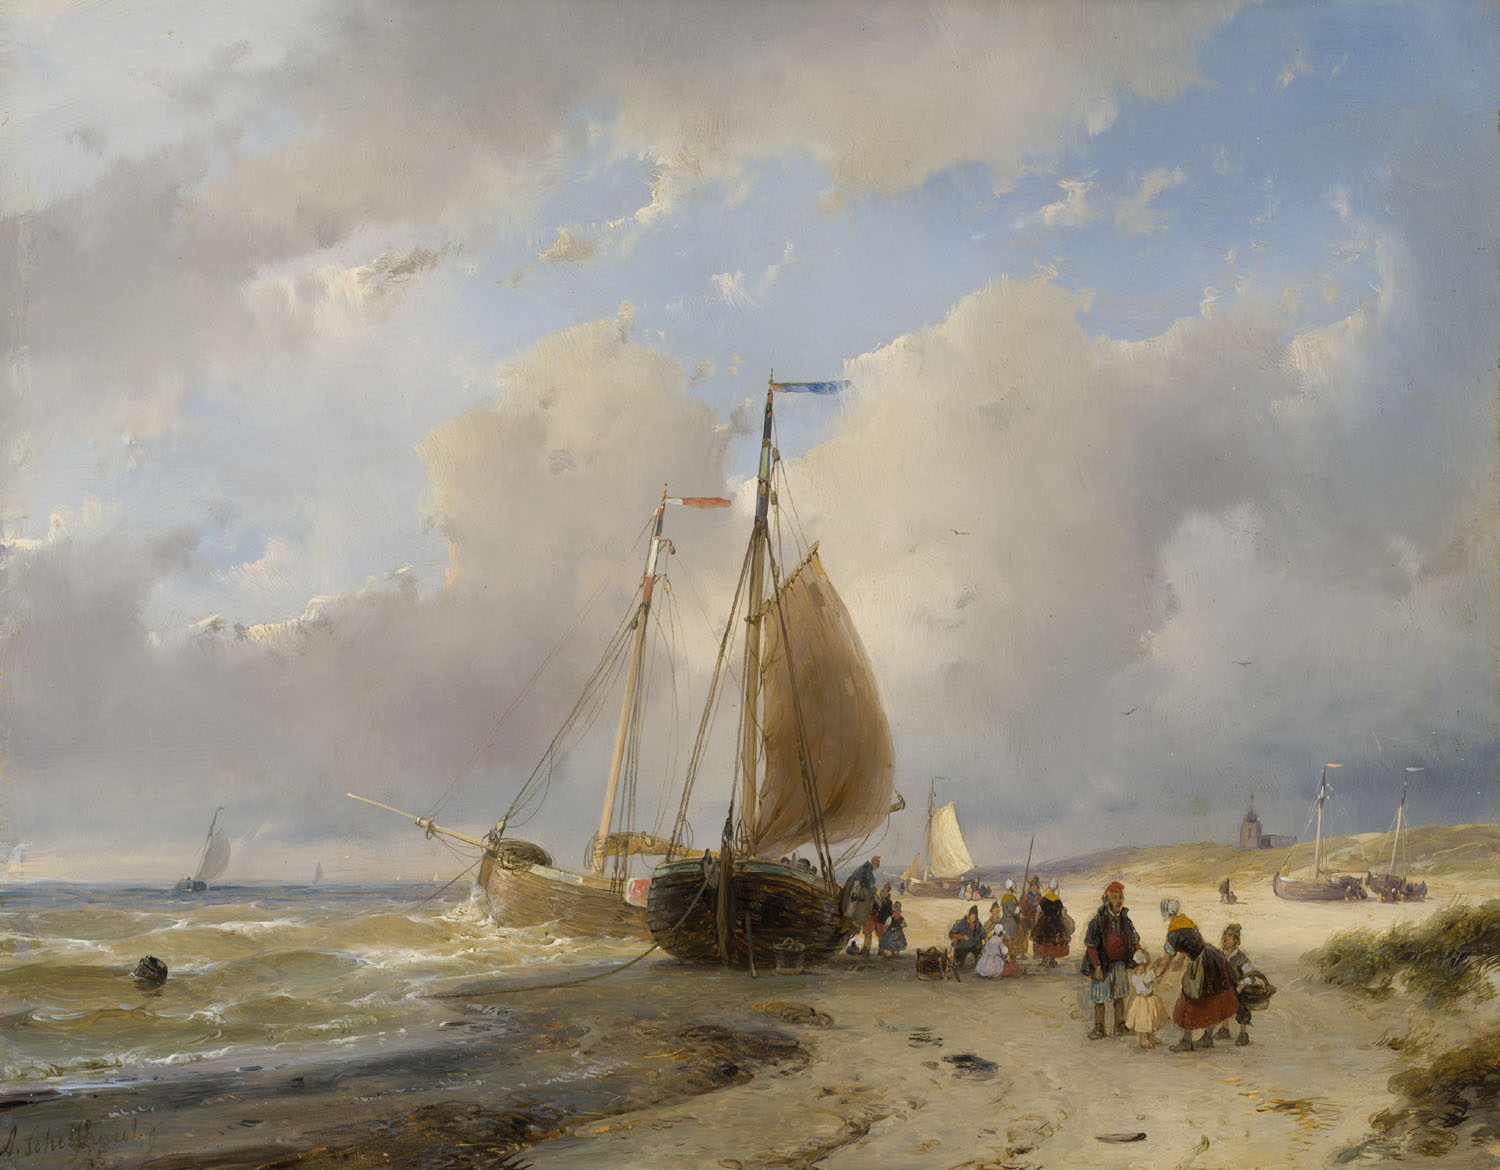 Andreas Schelfhout | A beach scene with fishing boats and many figures | Kunsthandel Bies | Bies Gallery